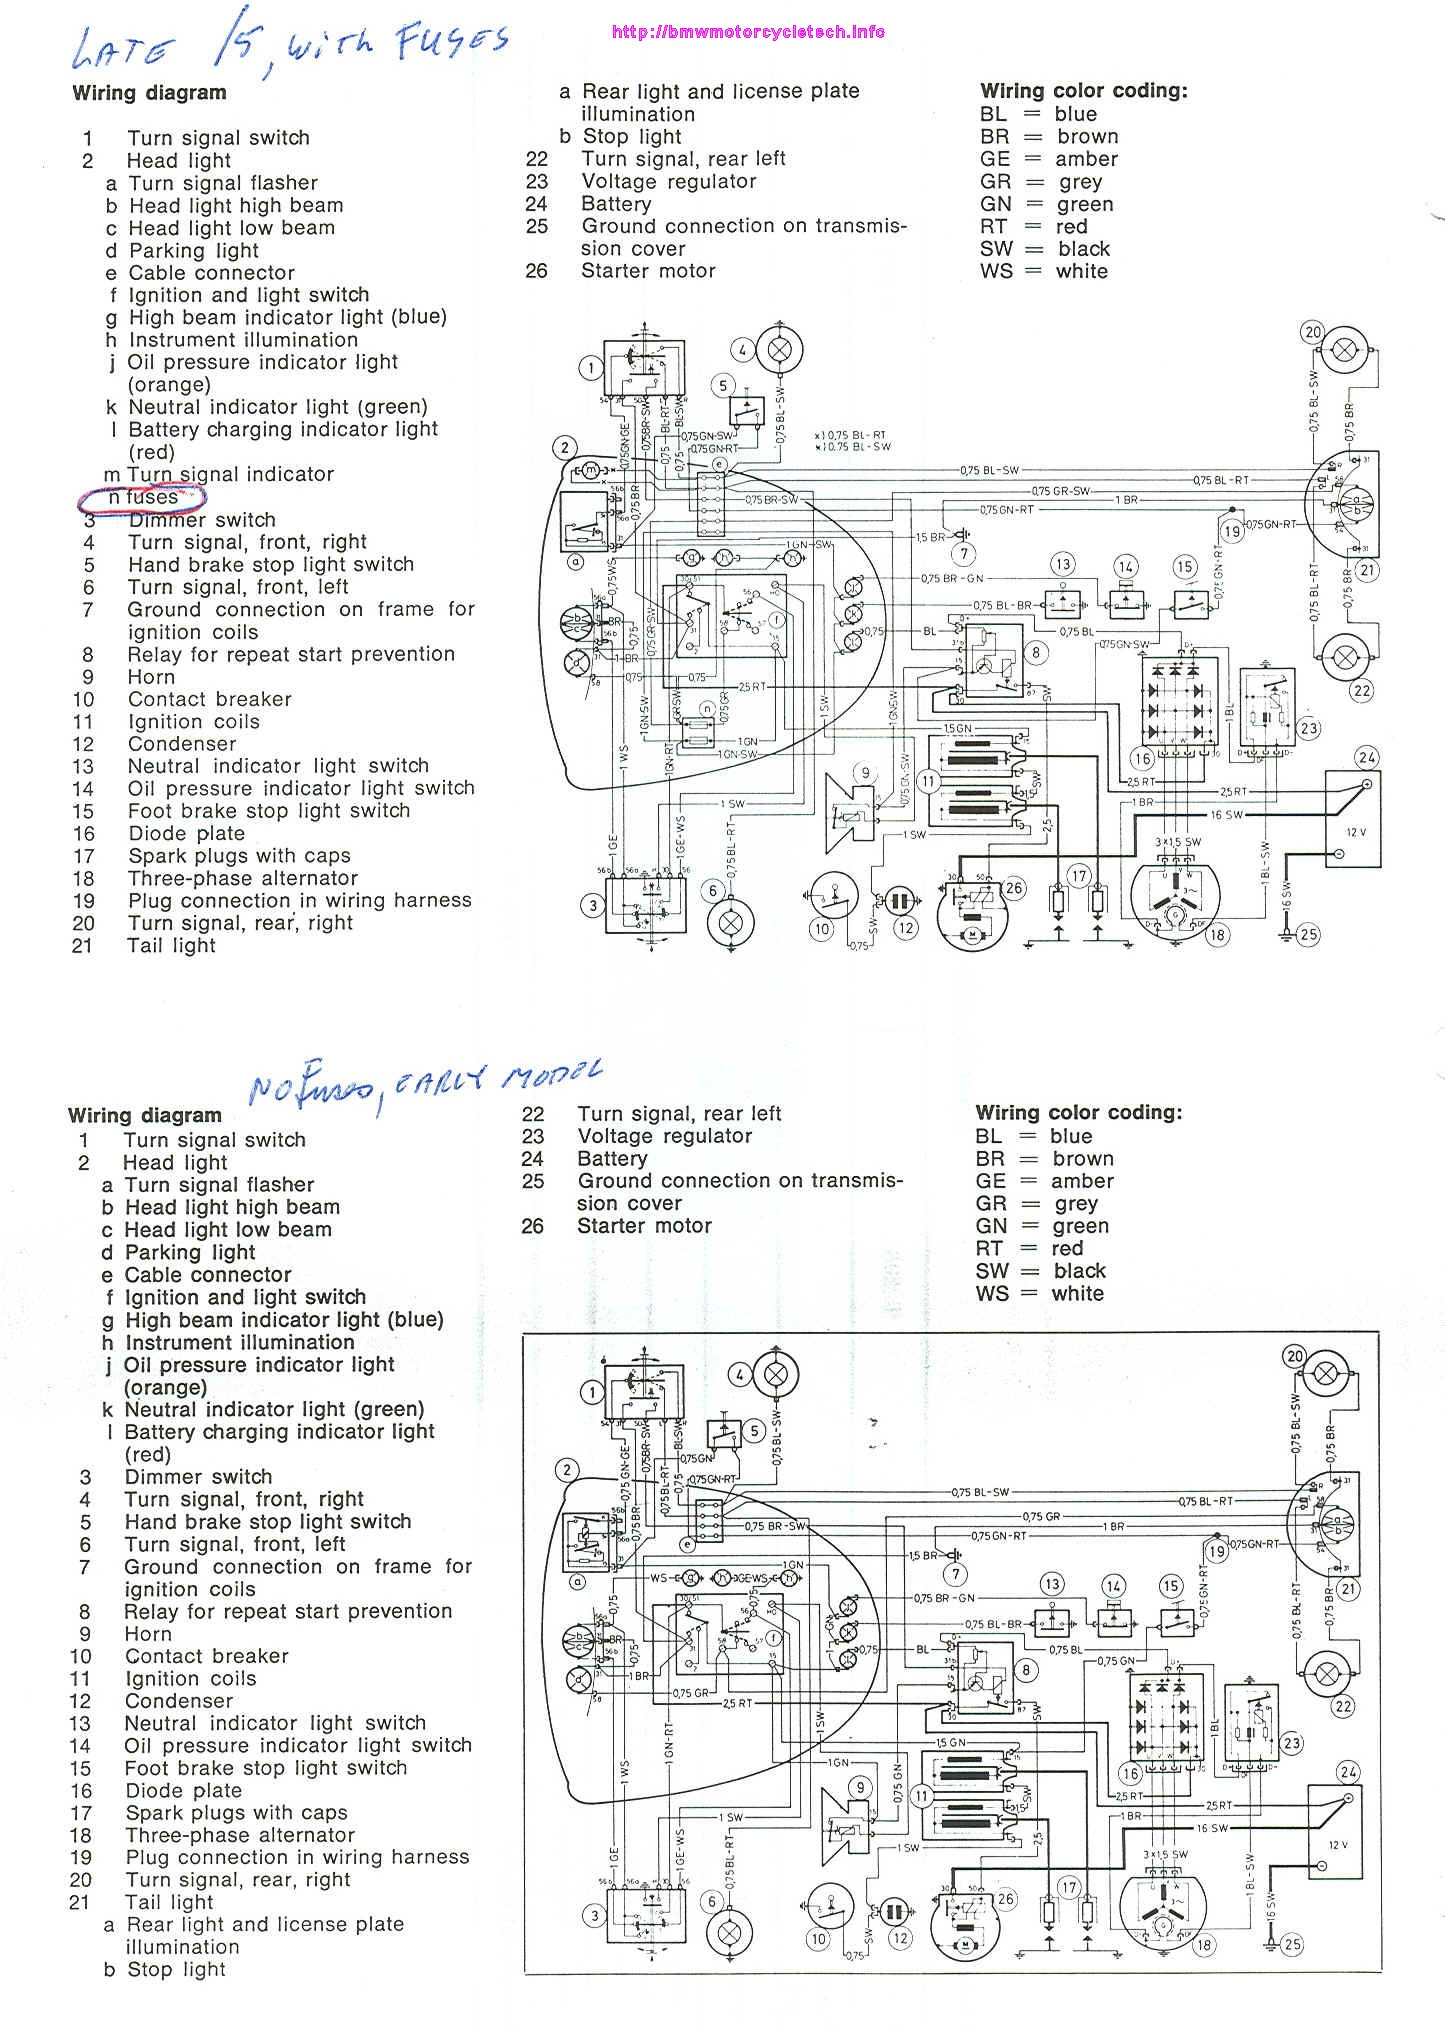 http://bmwmotorcycletech.info/Slash5Schematic.jpg